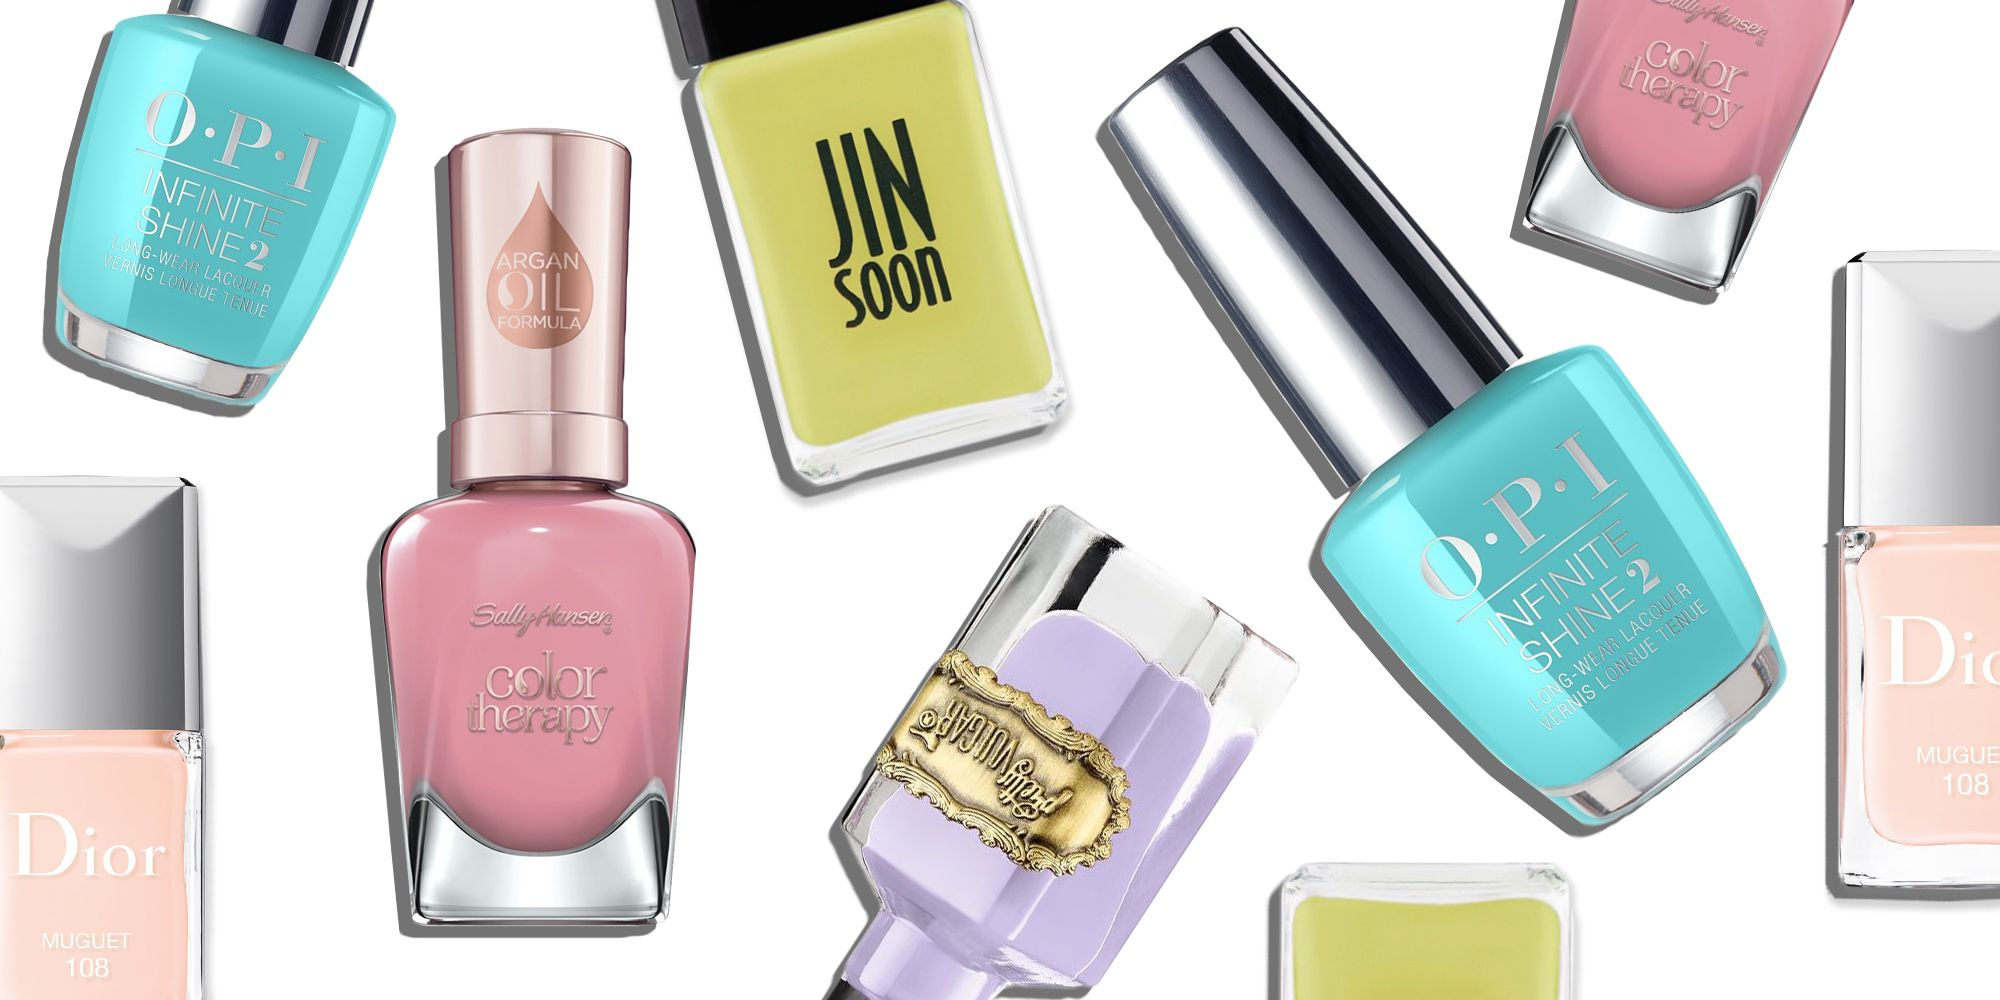 10 Best Spring Nail Colors in 2018 - Pretty Nail Polish Shades for ...